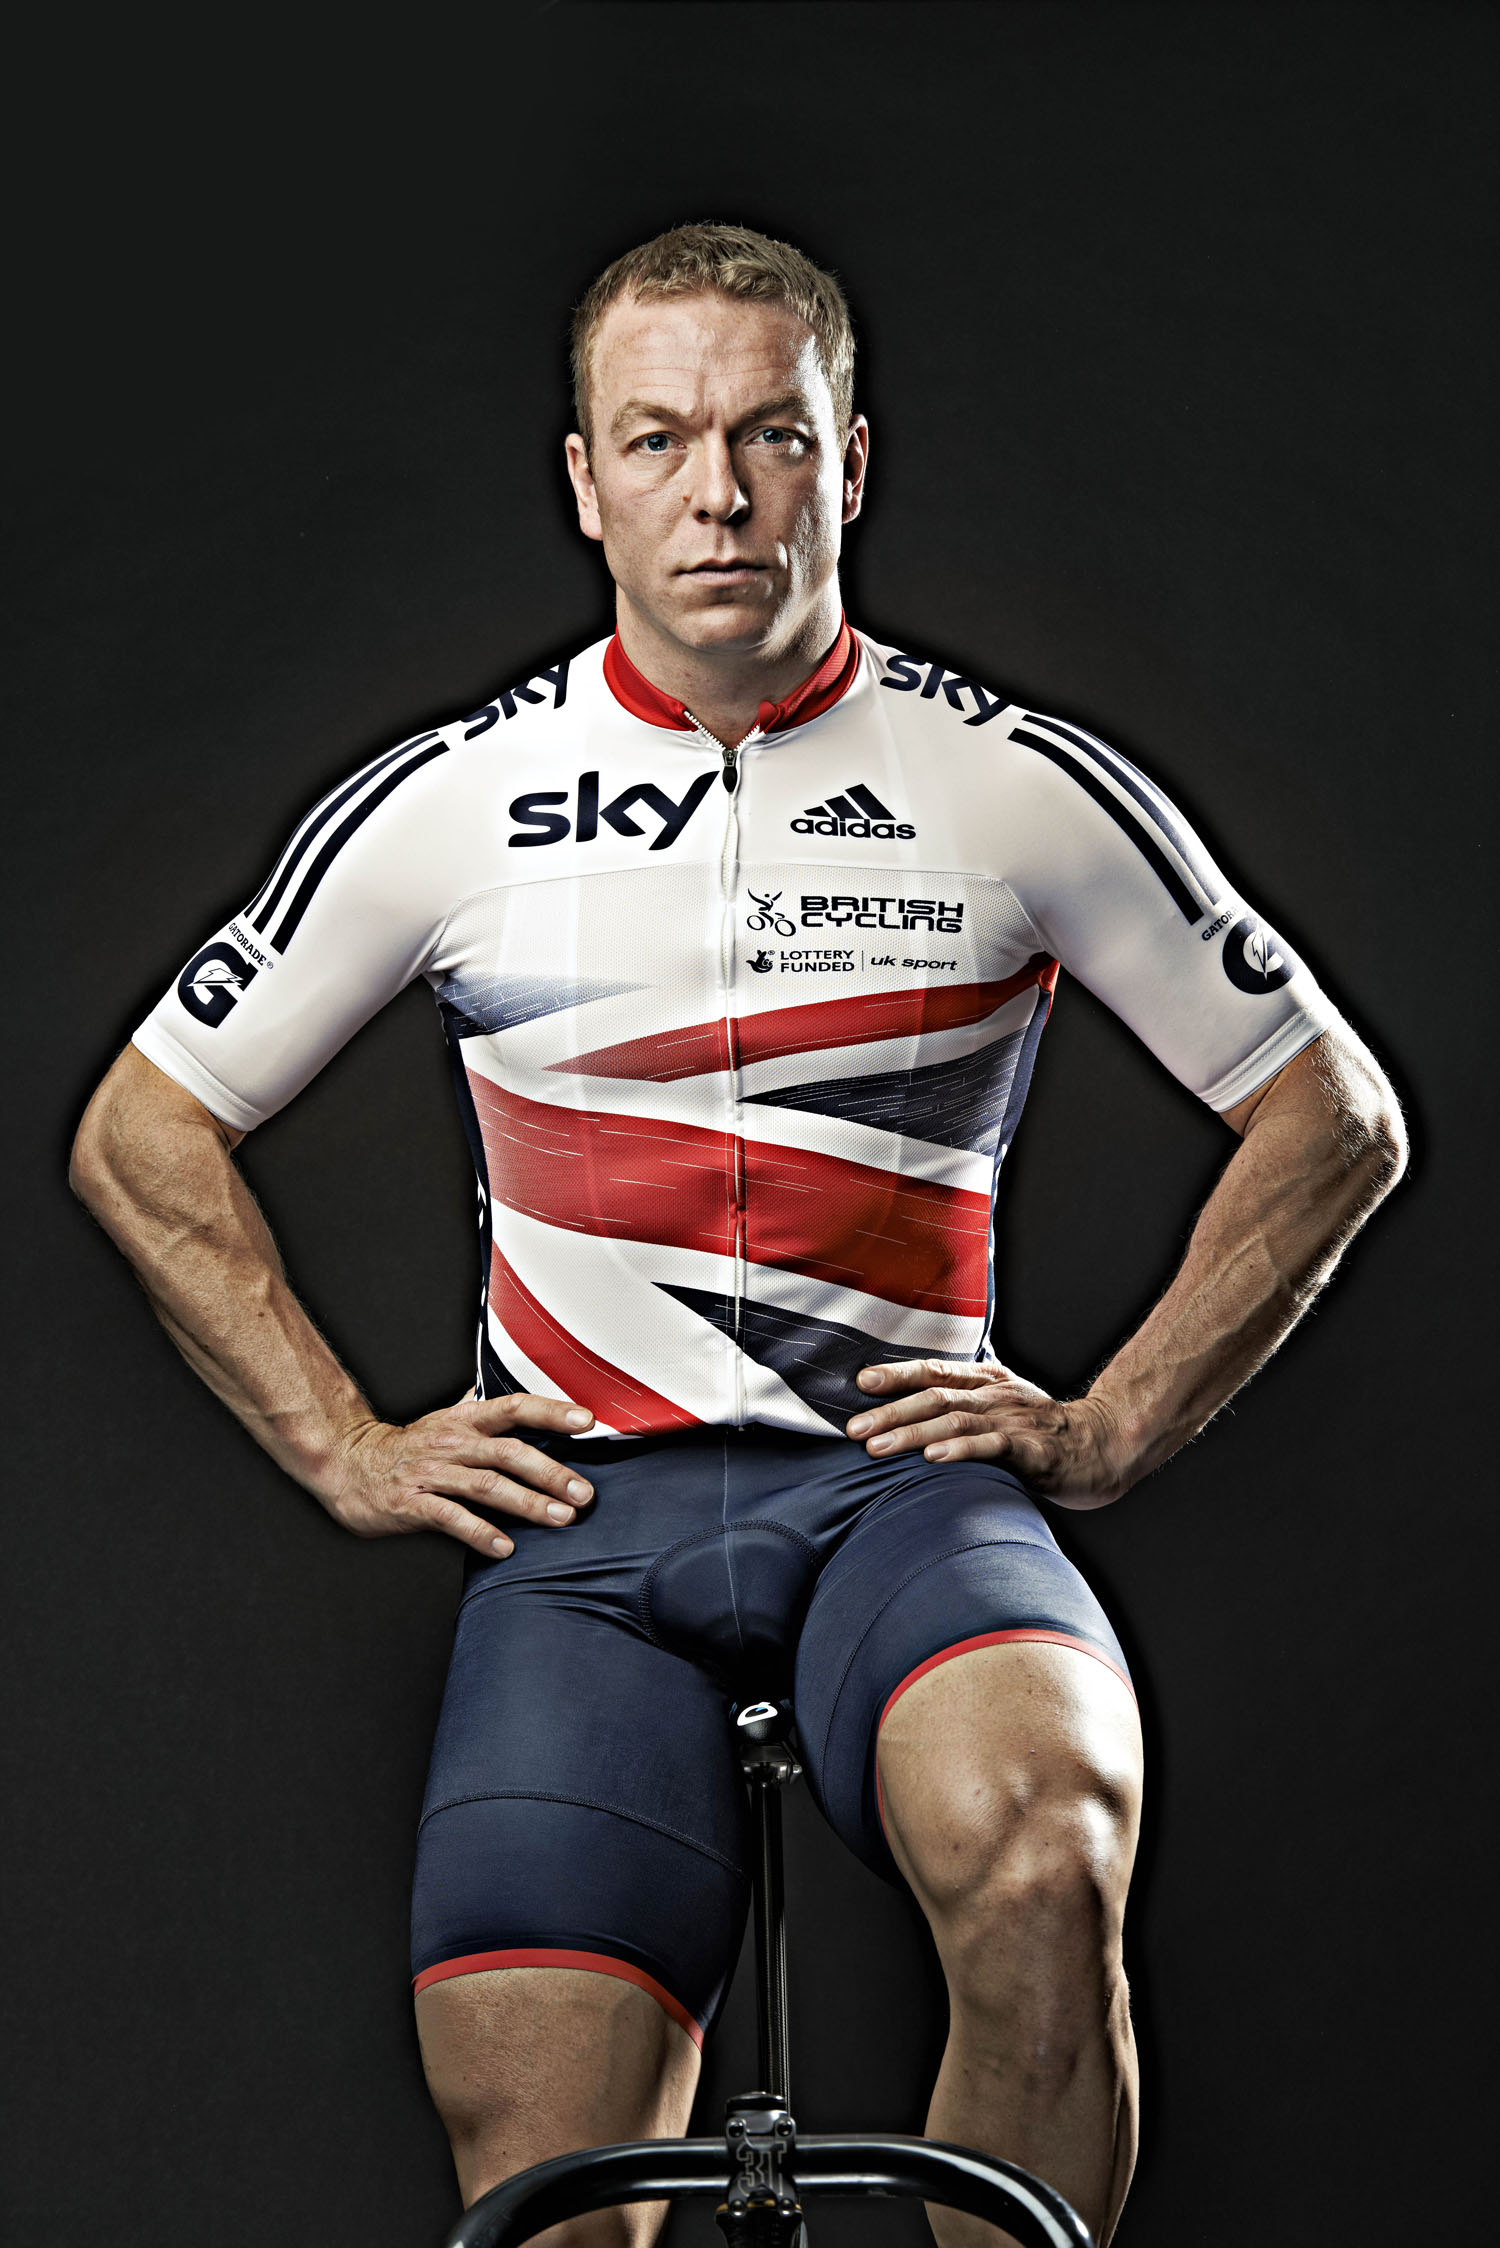 8a68864f8c4 adidas reveal new British Cycling team kit - The Bike List